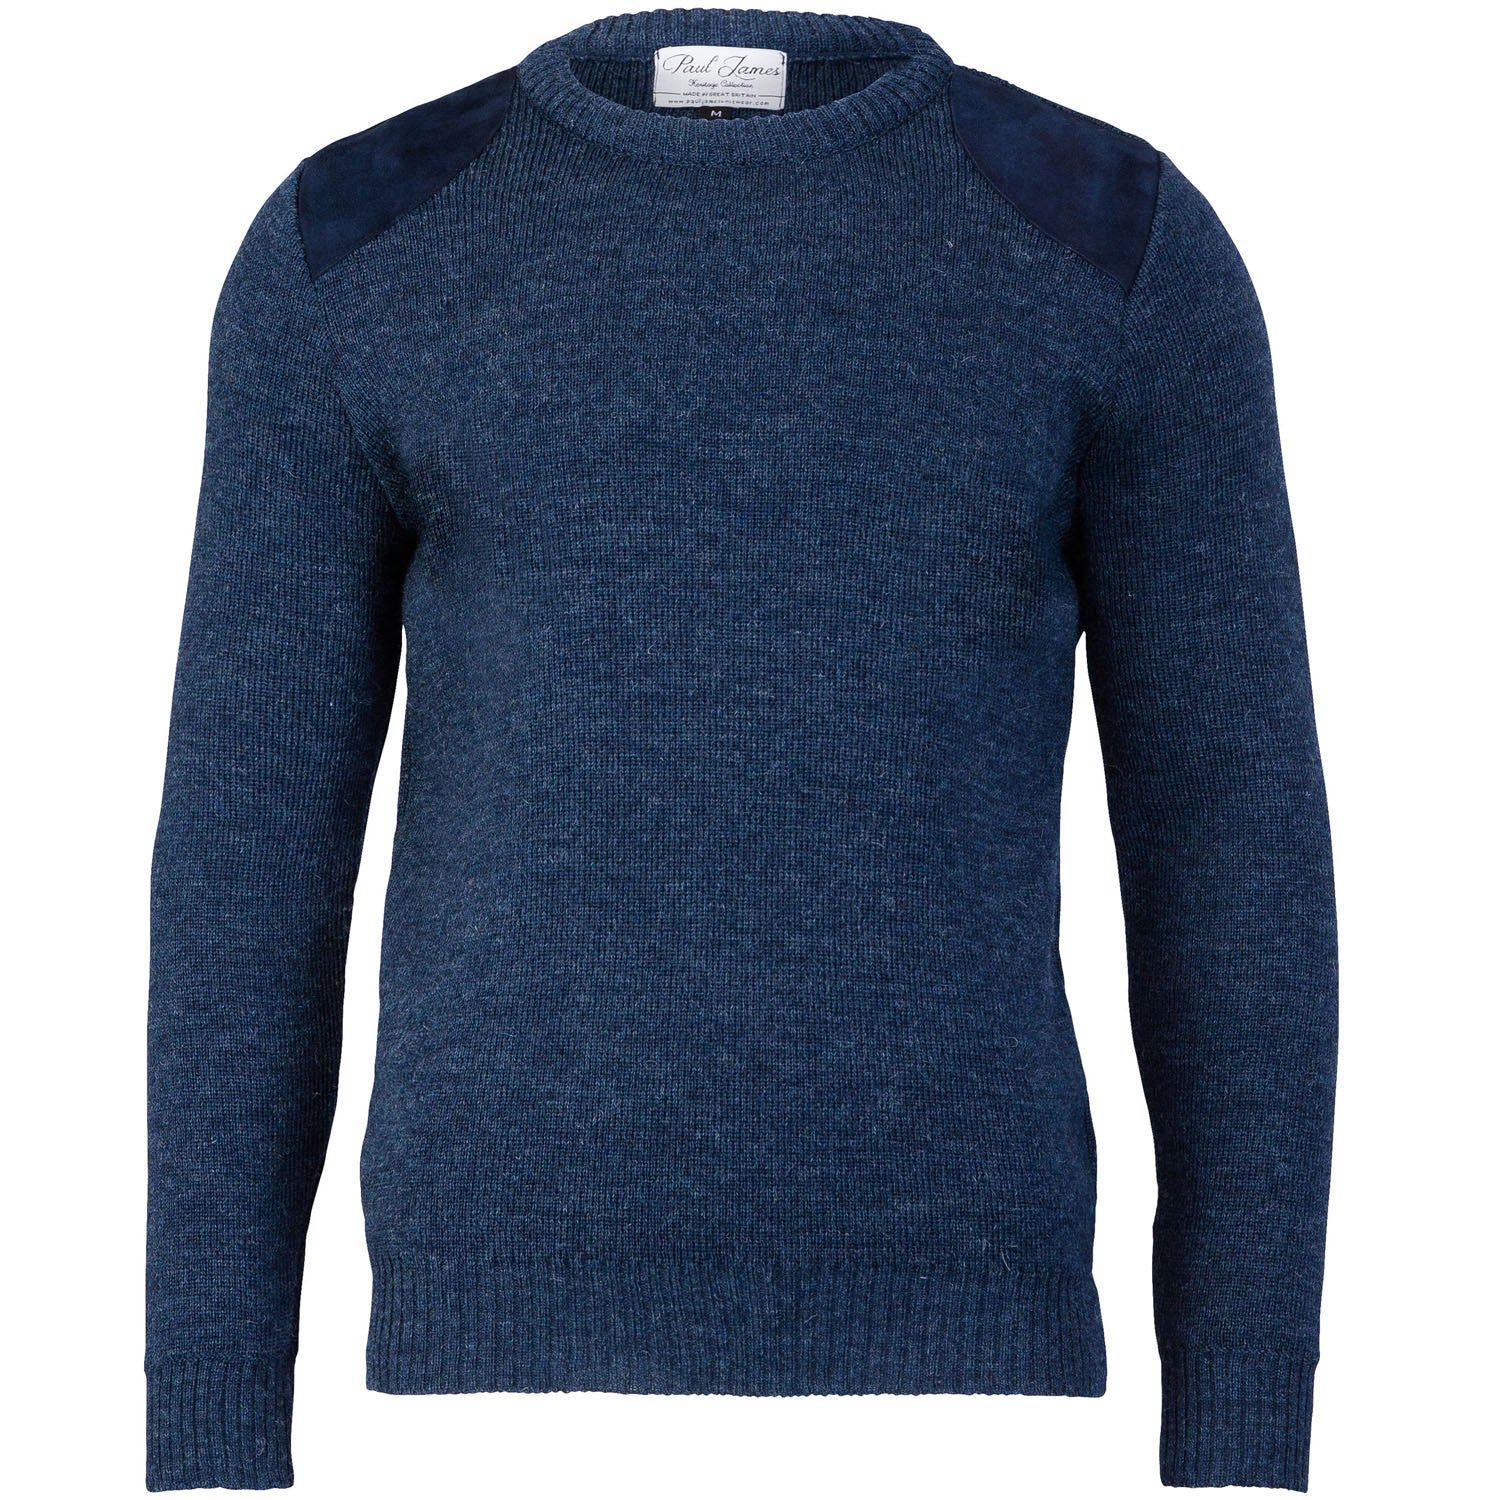 Shooter Edition I - Fine Knit Jumper - Round Patches - Pure British Wool - Denim